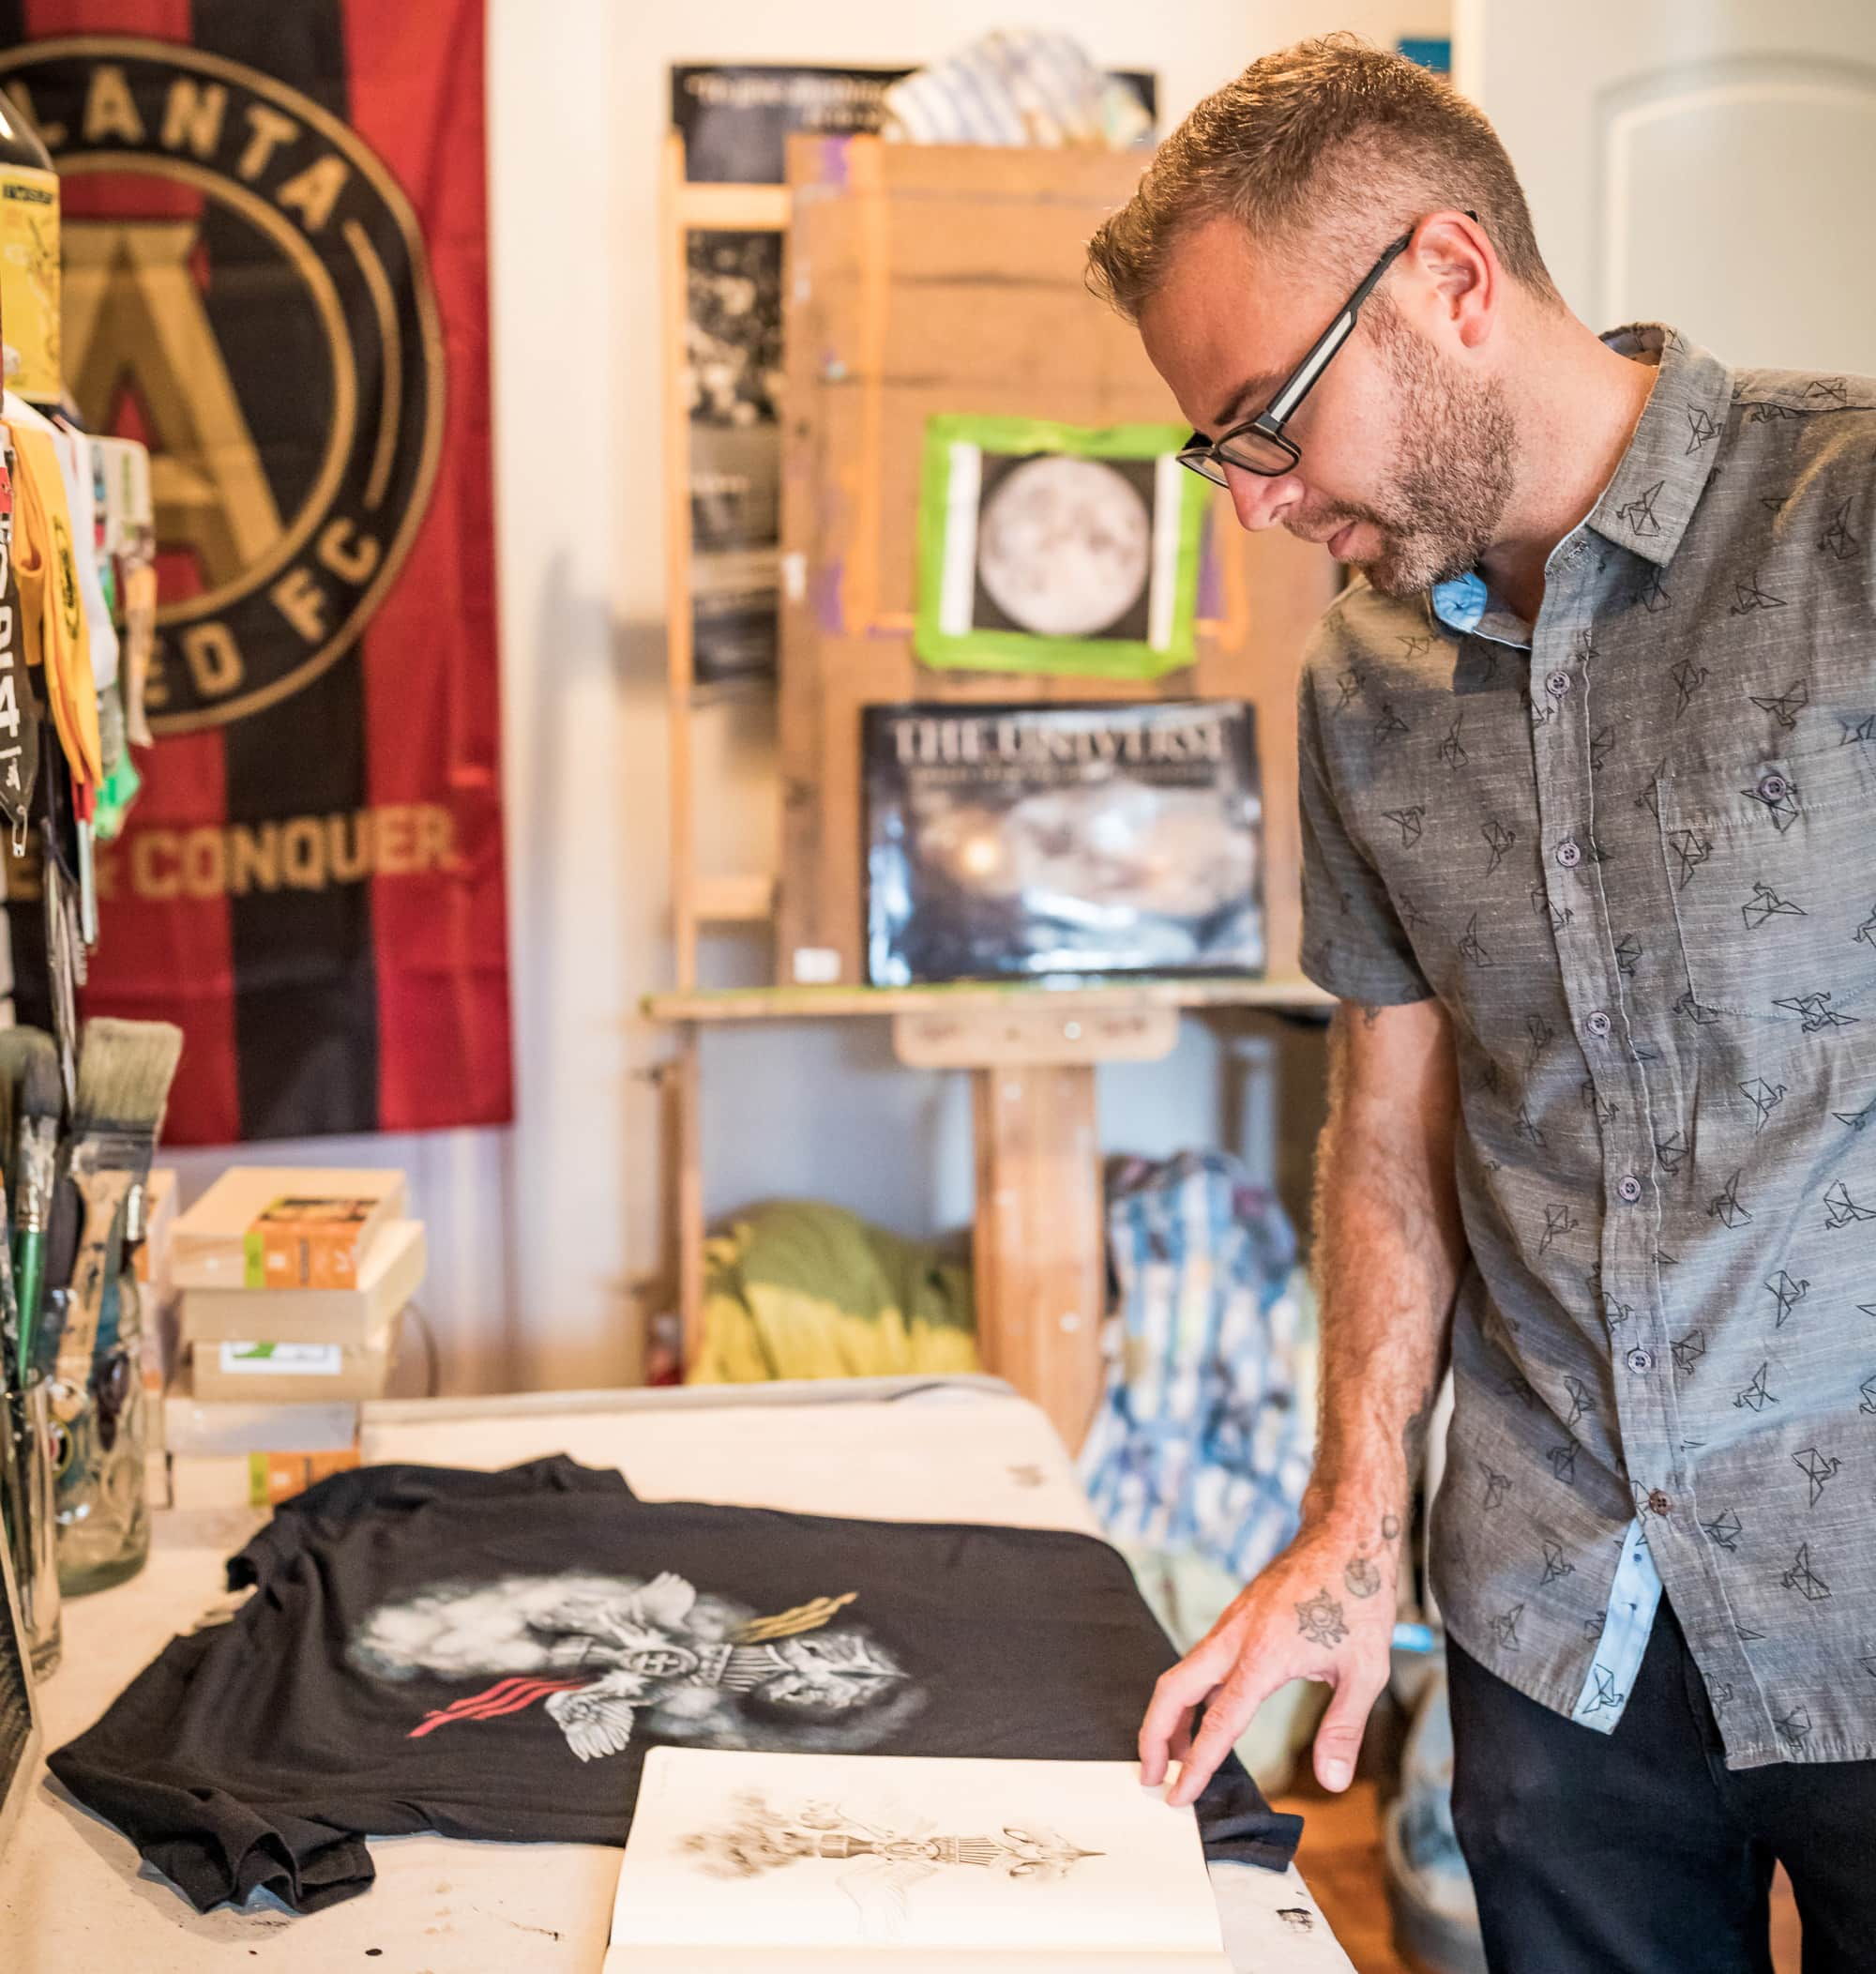 Artist Thomas Turner in his studio looking down at his sketch book and printed t-shirt.